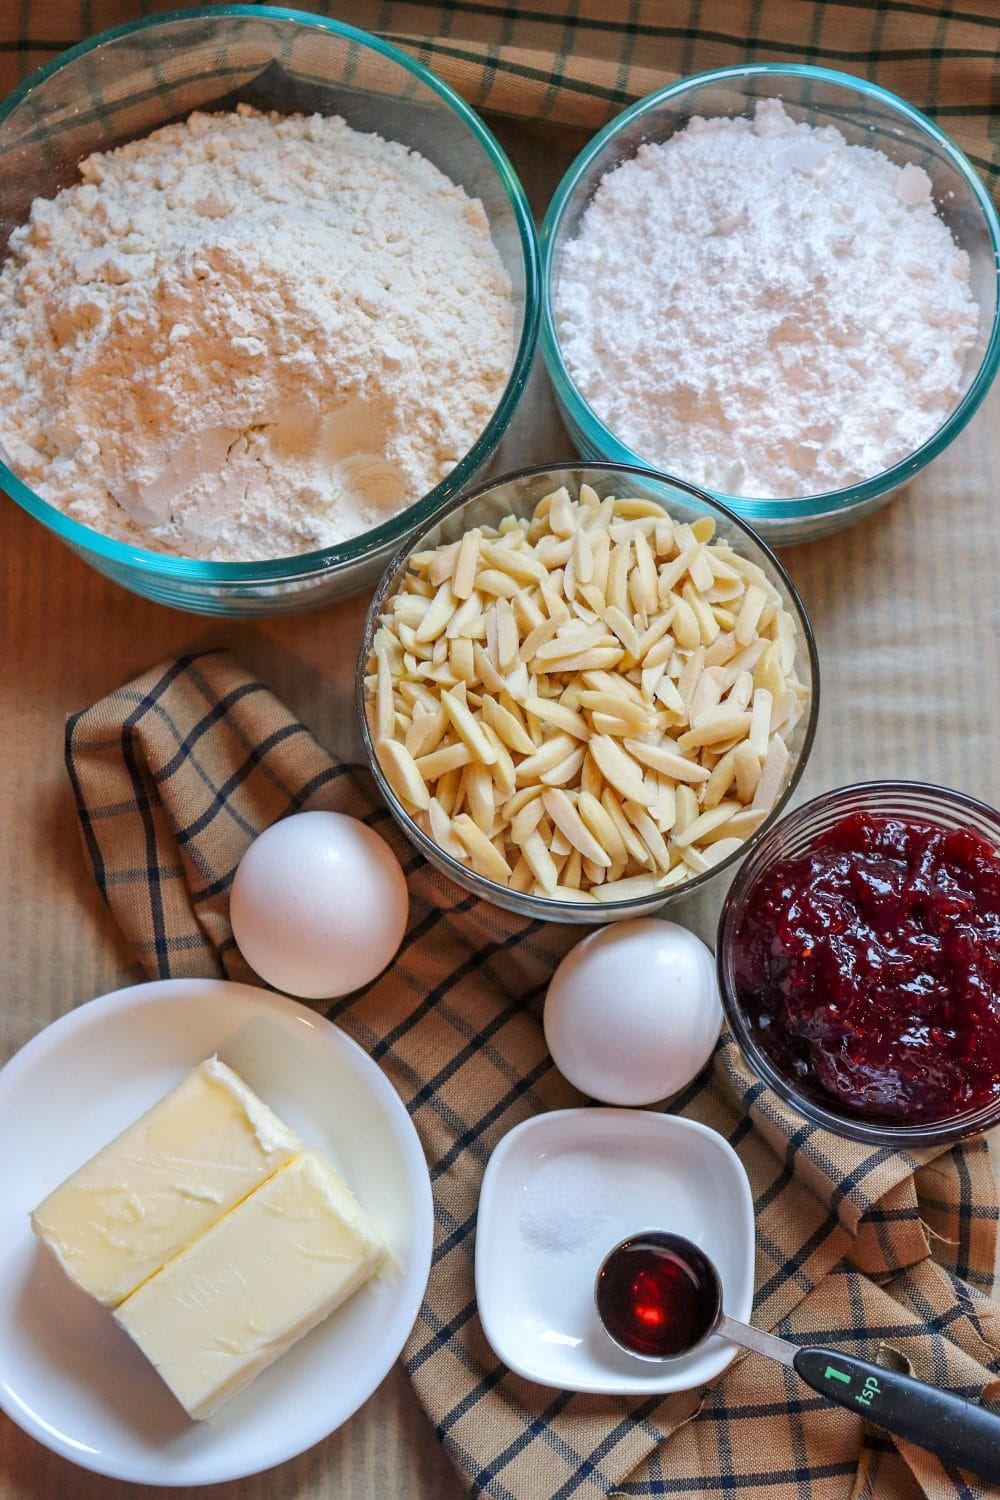 Ingredients for Linzer cookies